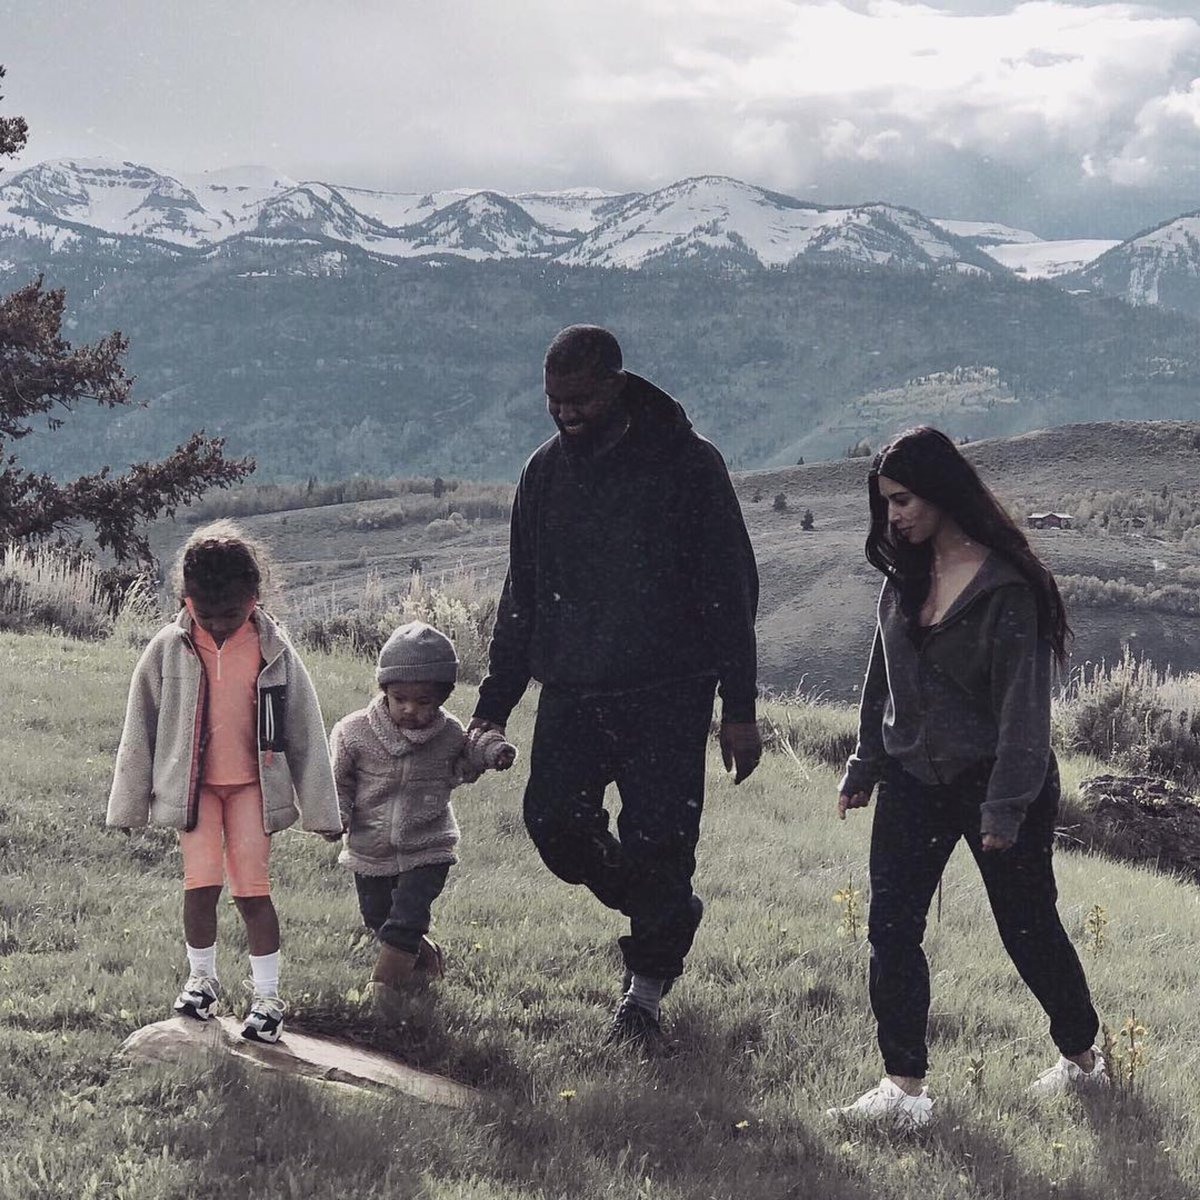 Family time 🏔